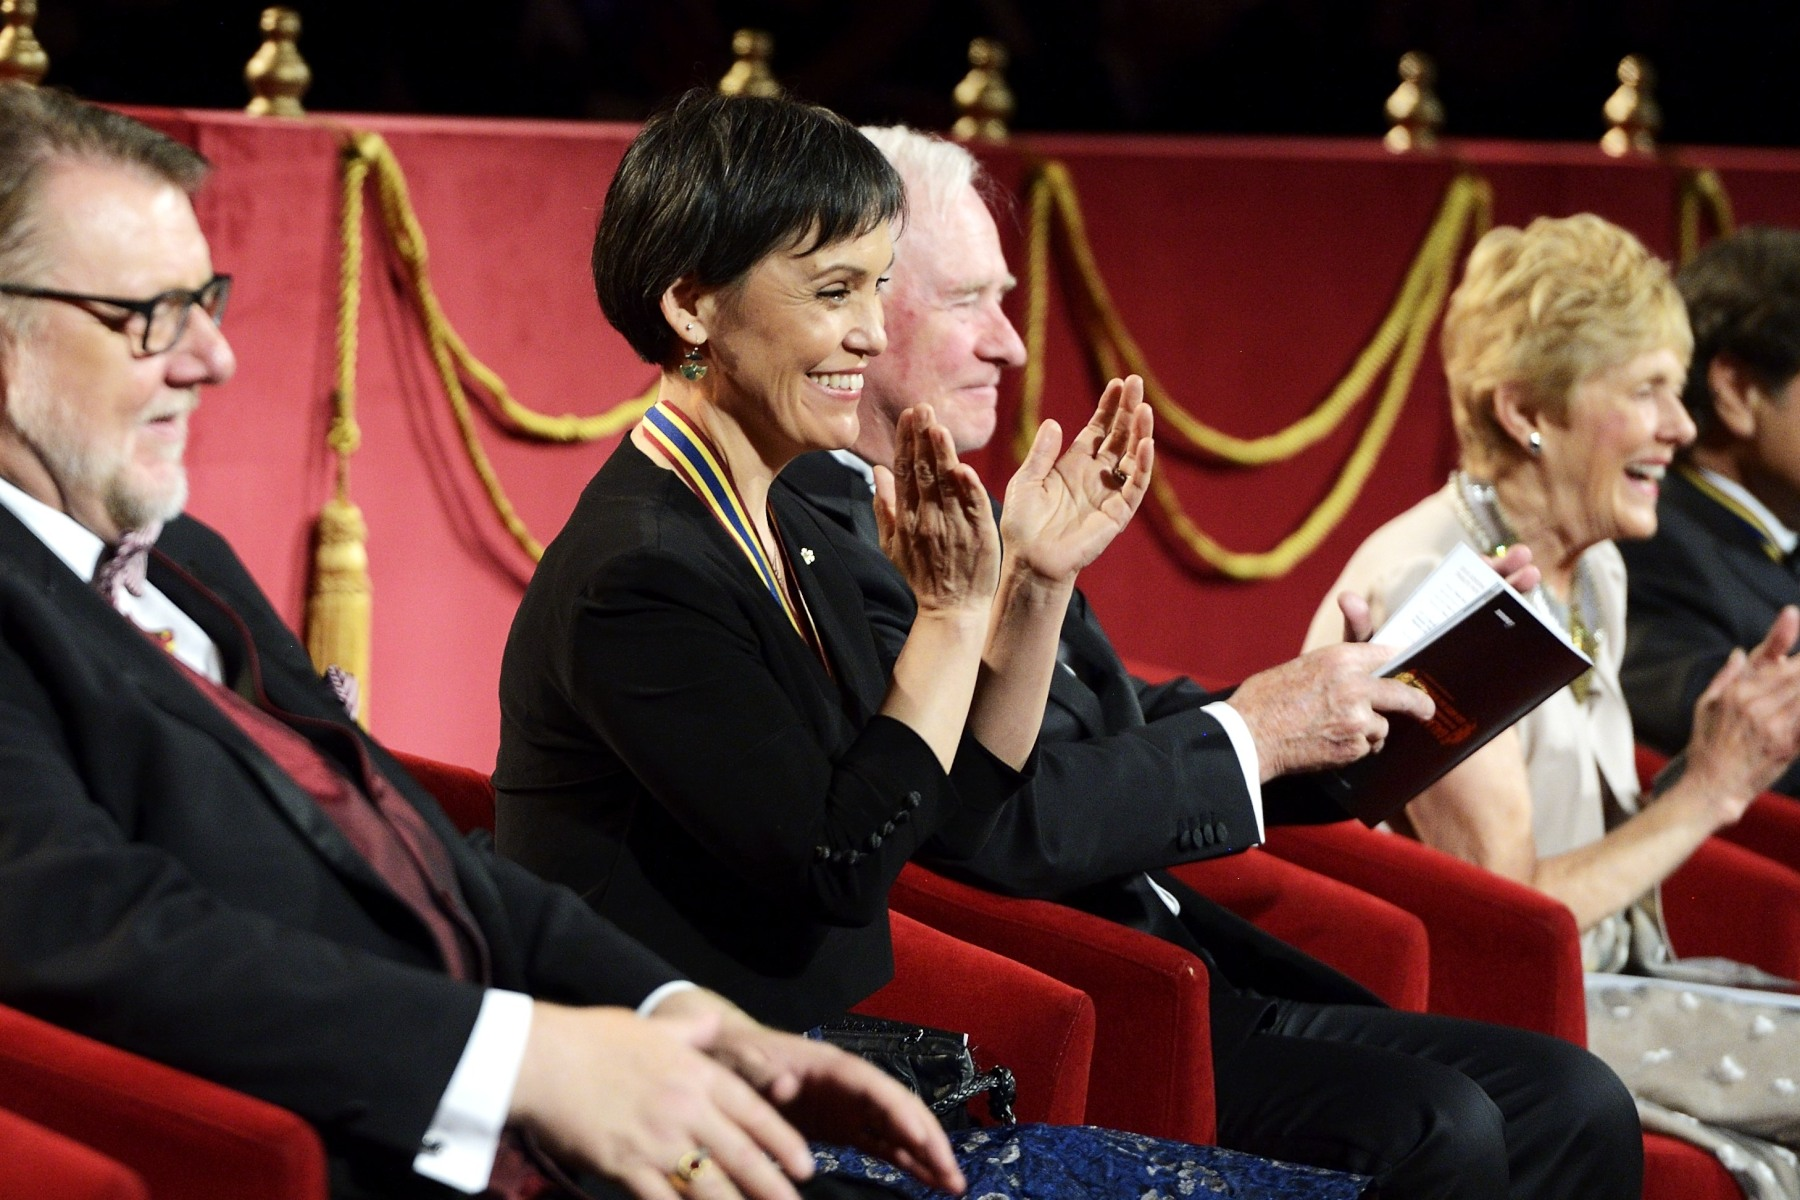 Susan Aglukark, O.C., Singer-songwriter and humanitarian, was honoured by...